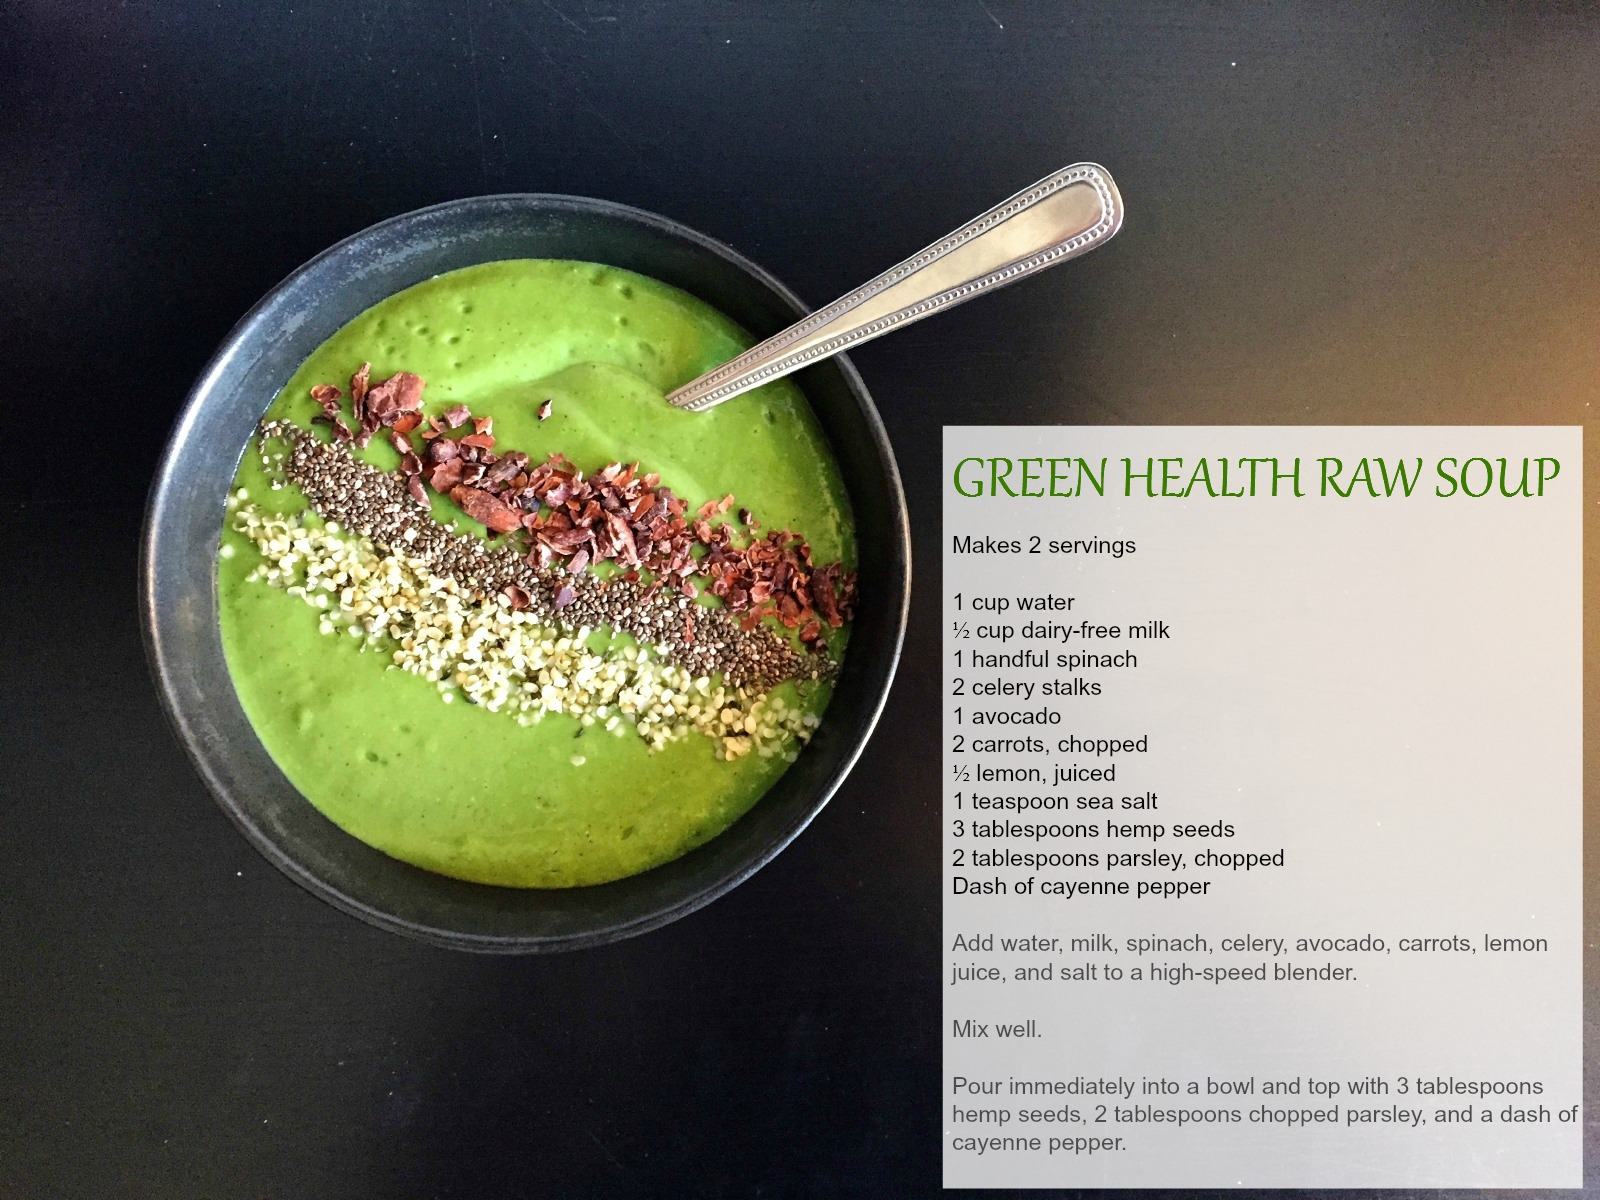 Green Health Raw Soup